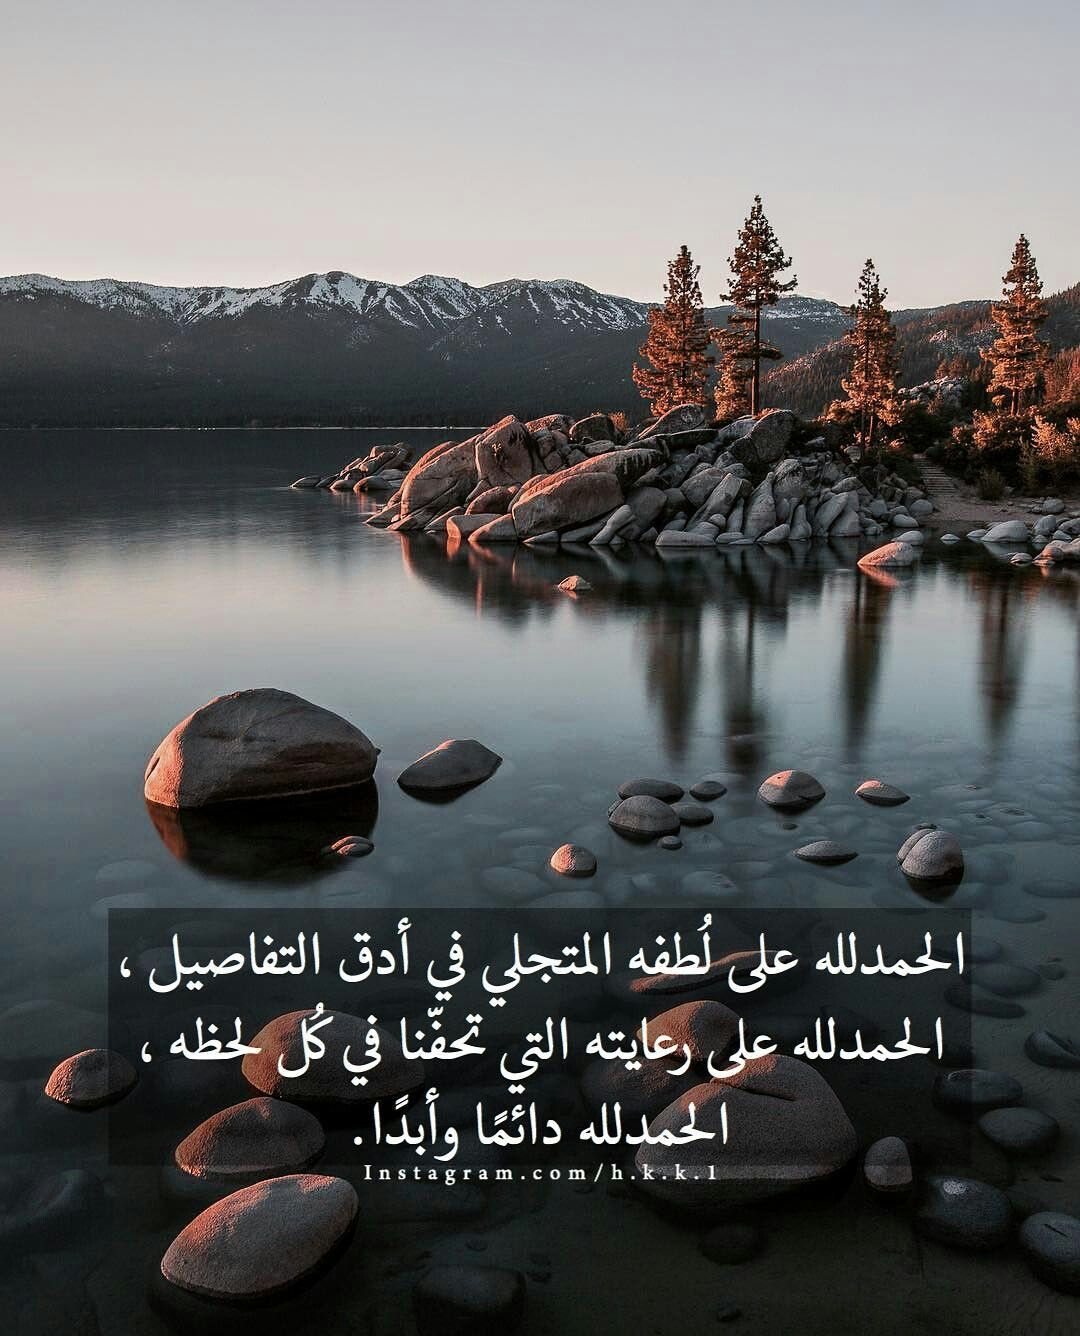 Pin By Abeer Khamees On اسلام Quran Quotes Love Beautiful Arabic Words Islamic Love Quotes